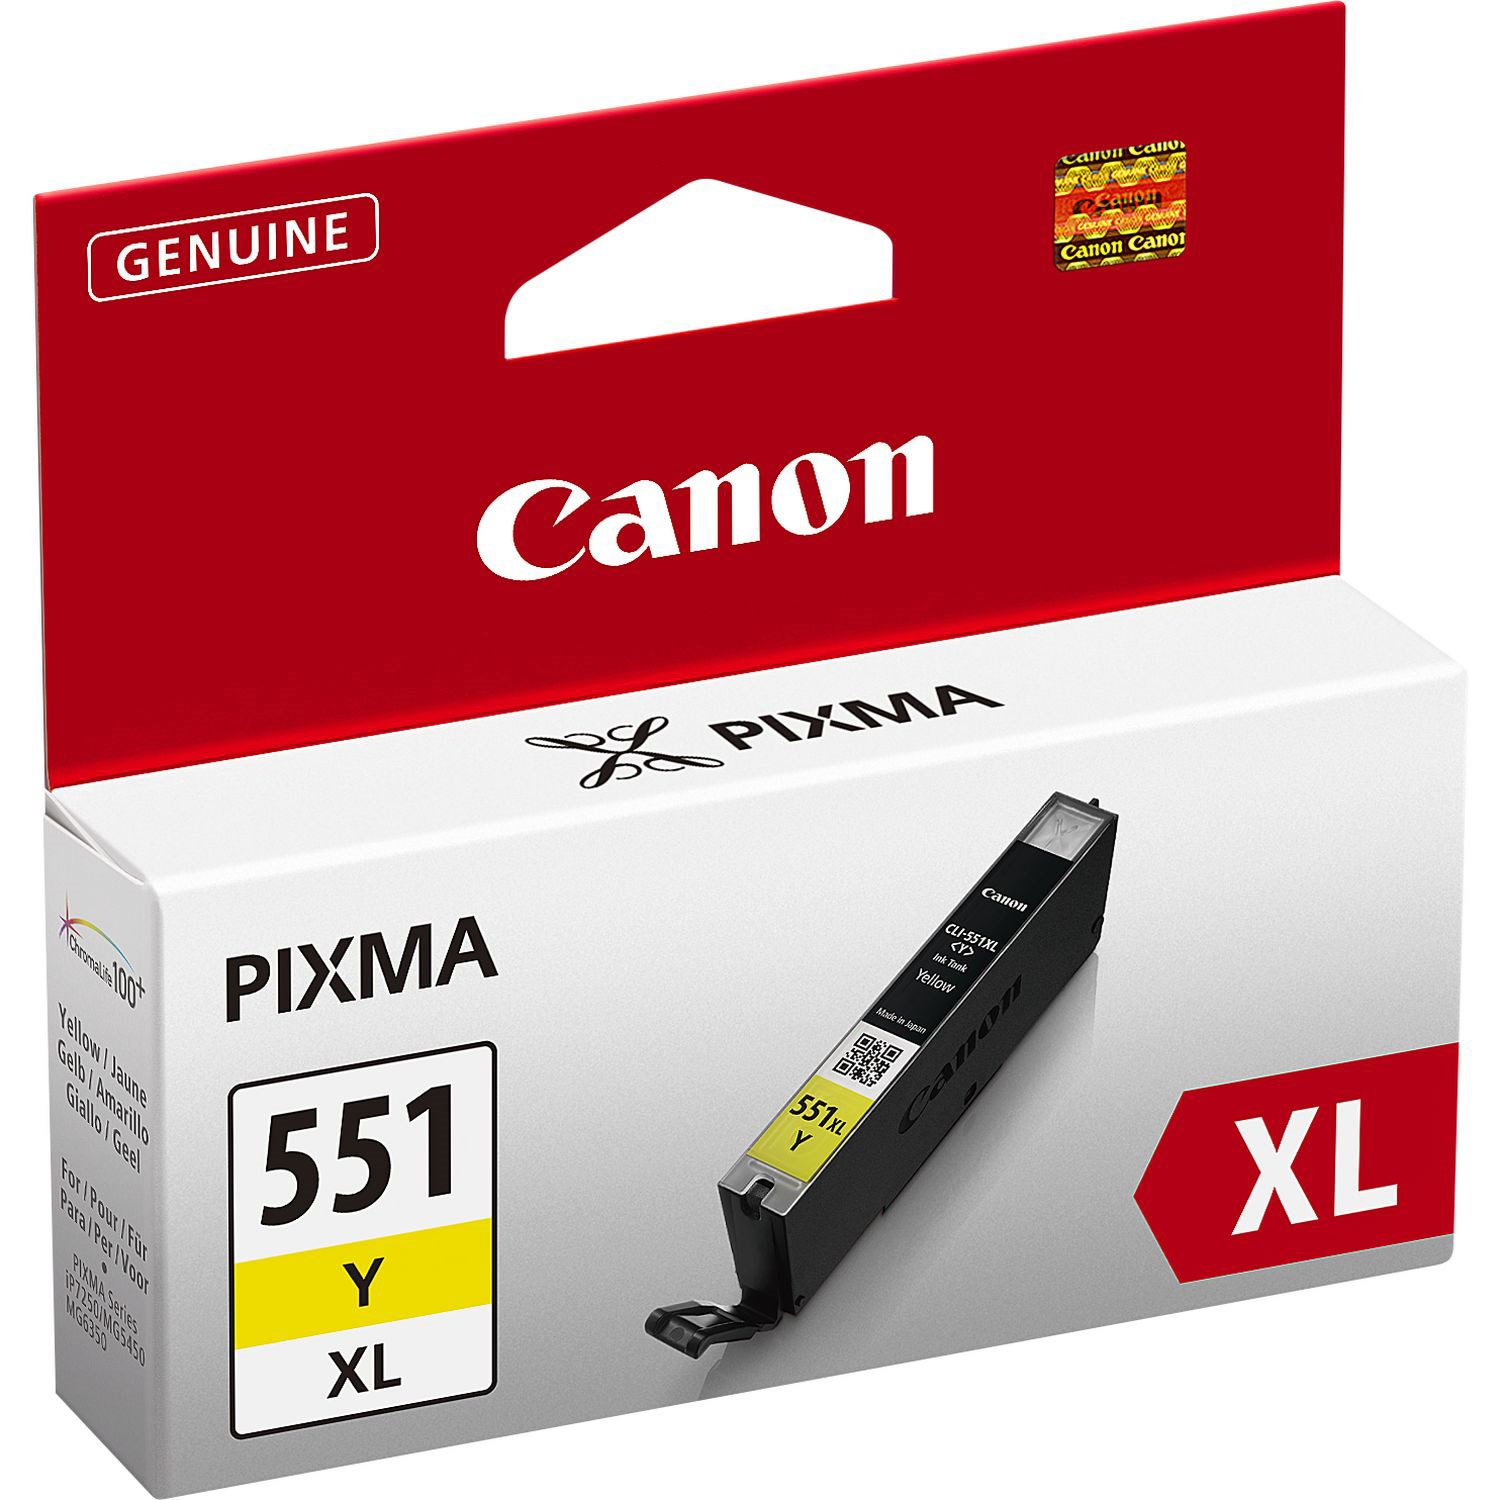 Canon CLI-551XL Y Yellow Sarı Kartuş 6446B001 IP7250 MG5450 MG6350